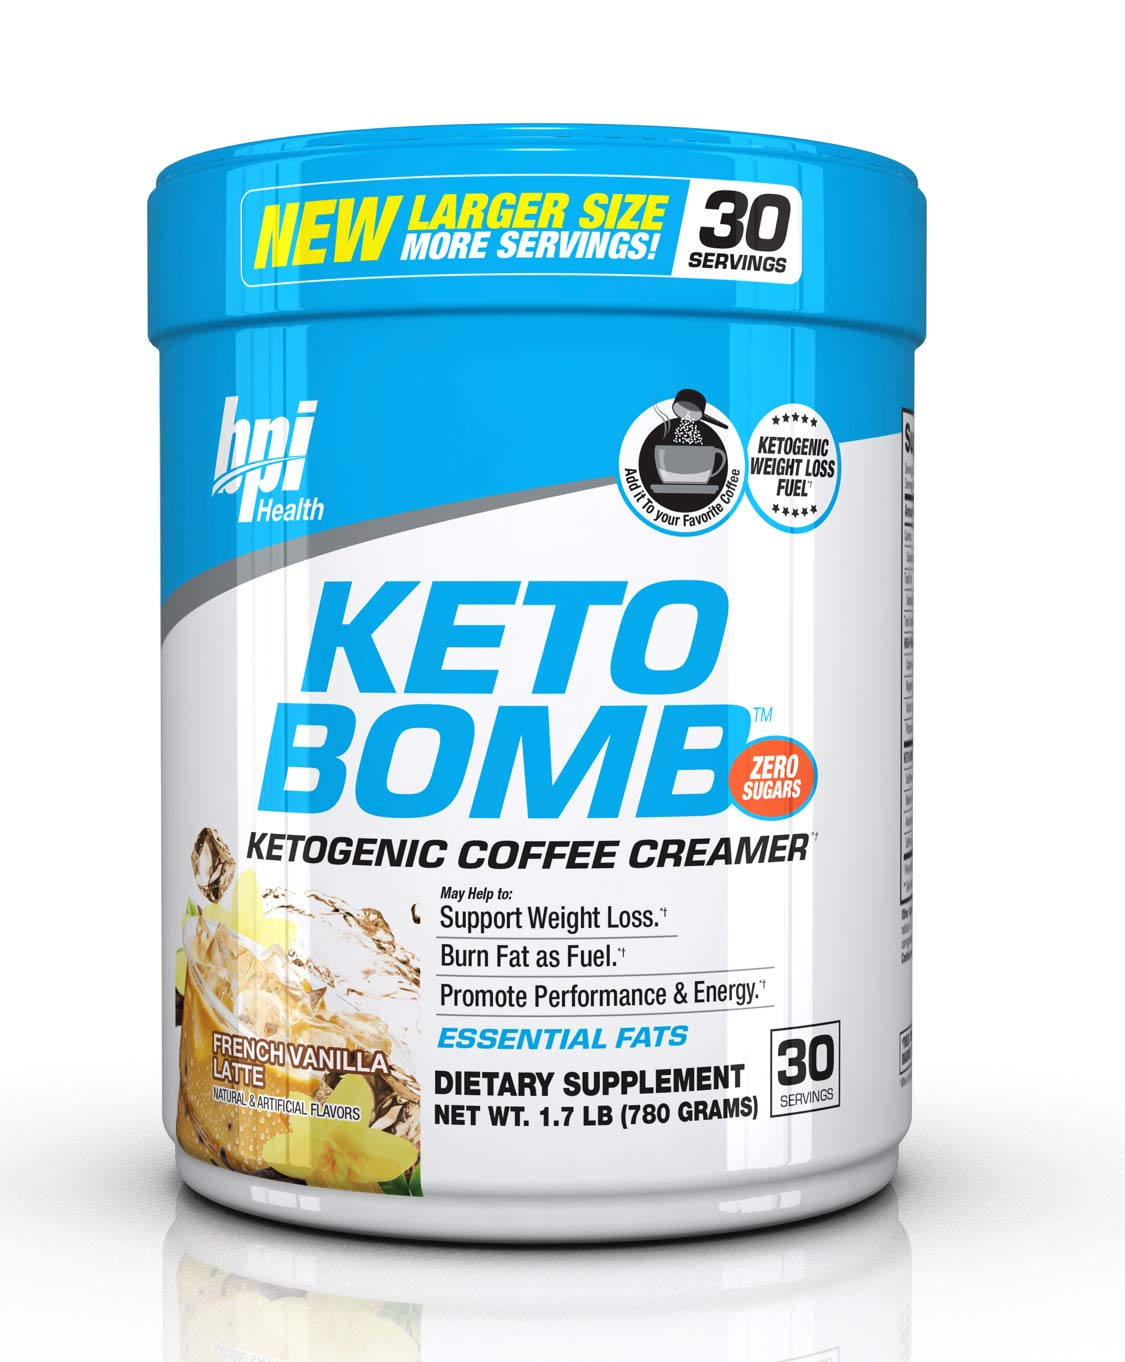 Bpi Health Keto Bomb - Ketogenic Coffee Creamer - Amazing Taste - Supports Weight Loss - Essential Fats - Boosts Energy - 0 Sugar - French Vanilla Latte - 30 Servings - Larger Size - Huge Savings